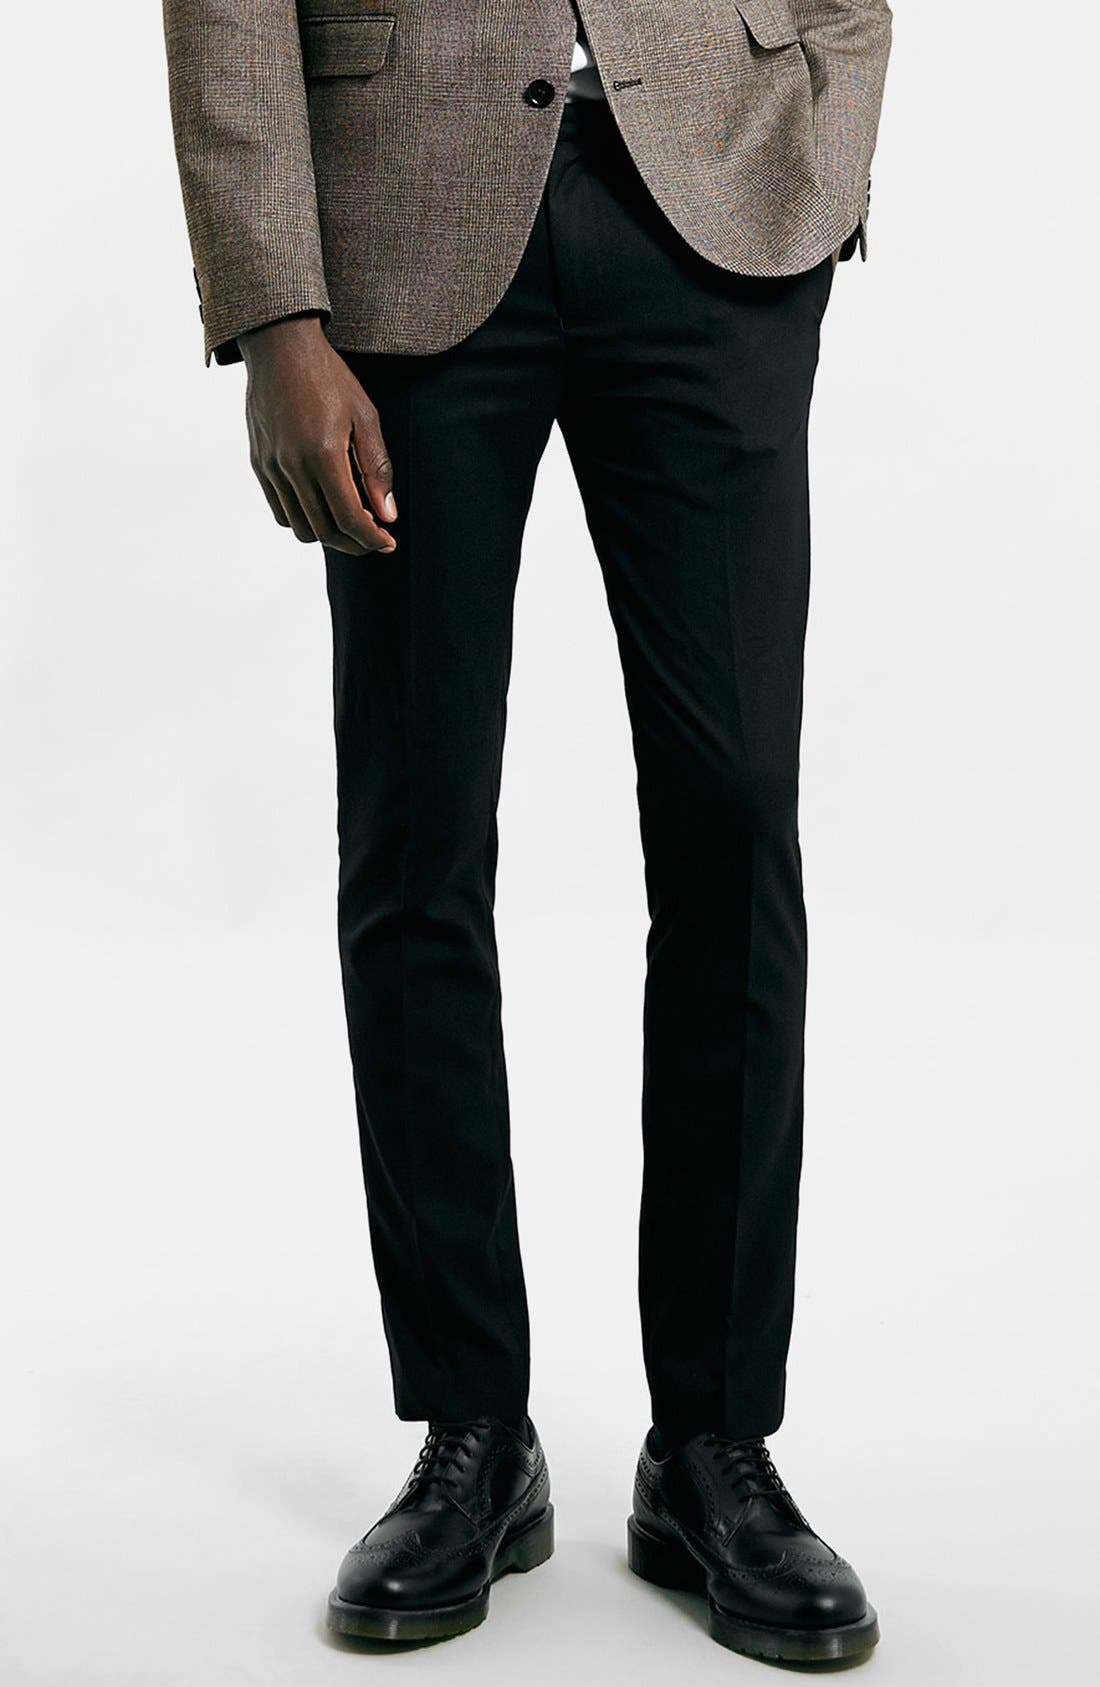 Ultra Skinny Black Suit Trousers,                             Main thumbnail 1, color,                             Black